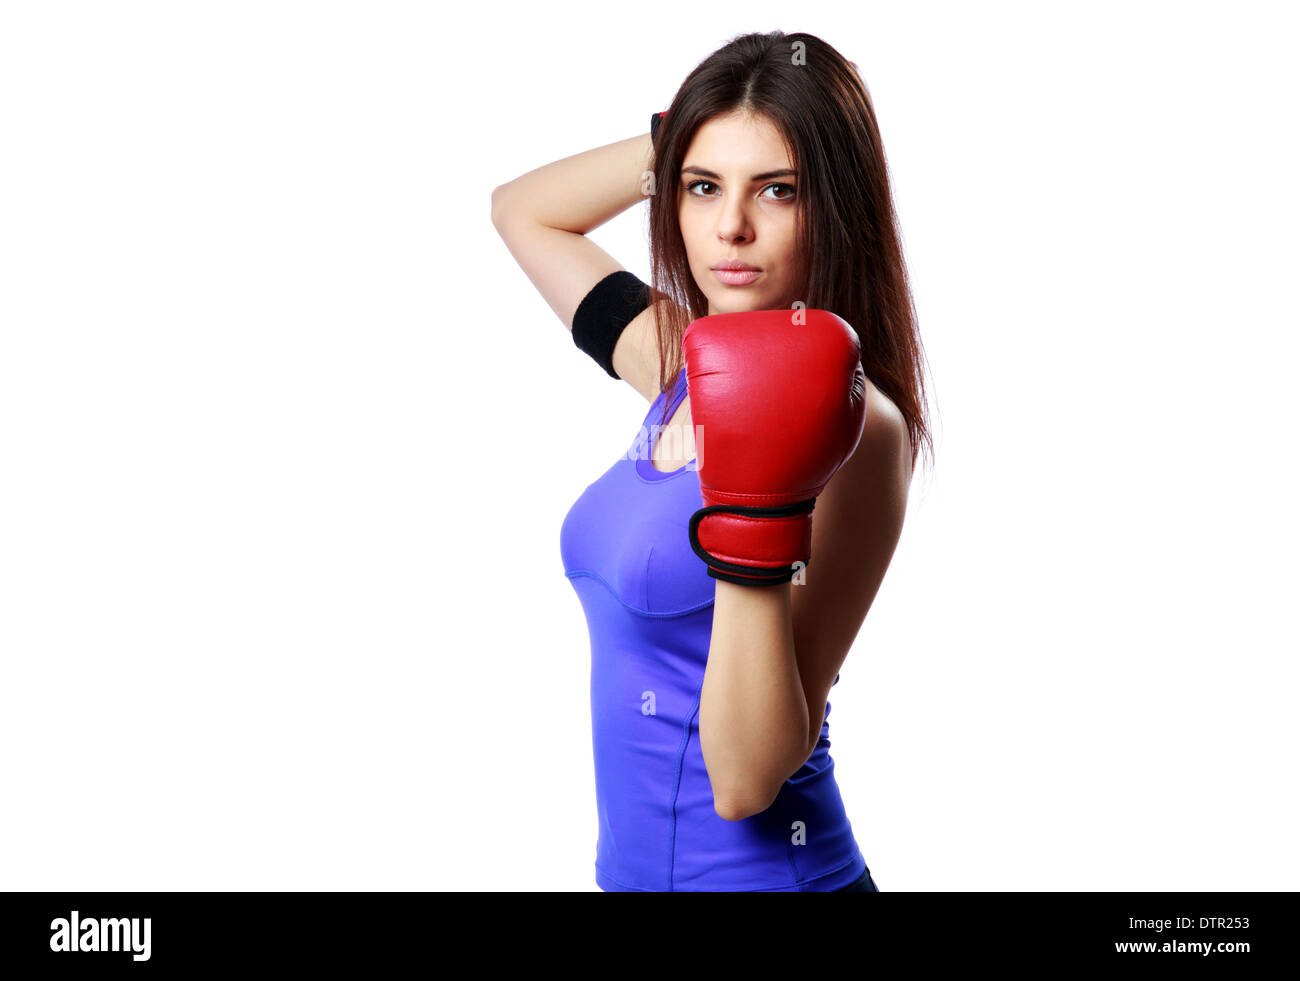 Young confident sport woman standing with boxing gloves isolated on gray background - Stock Image